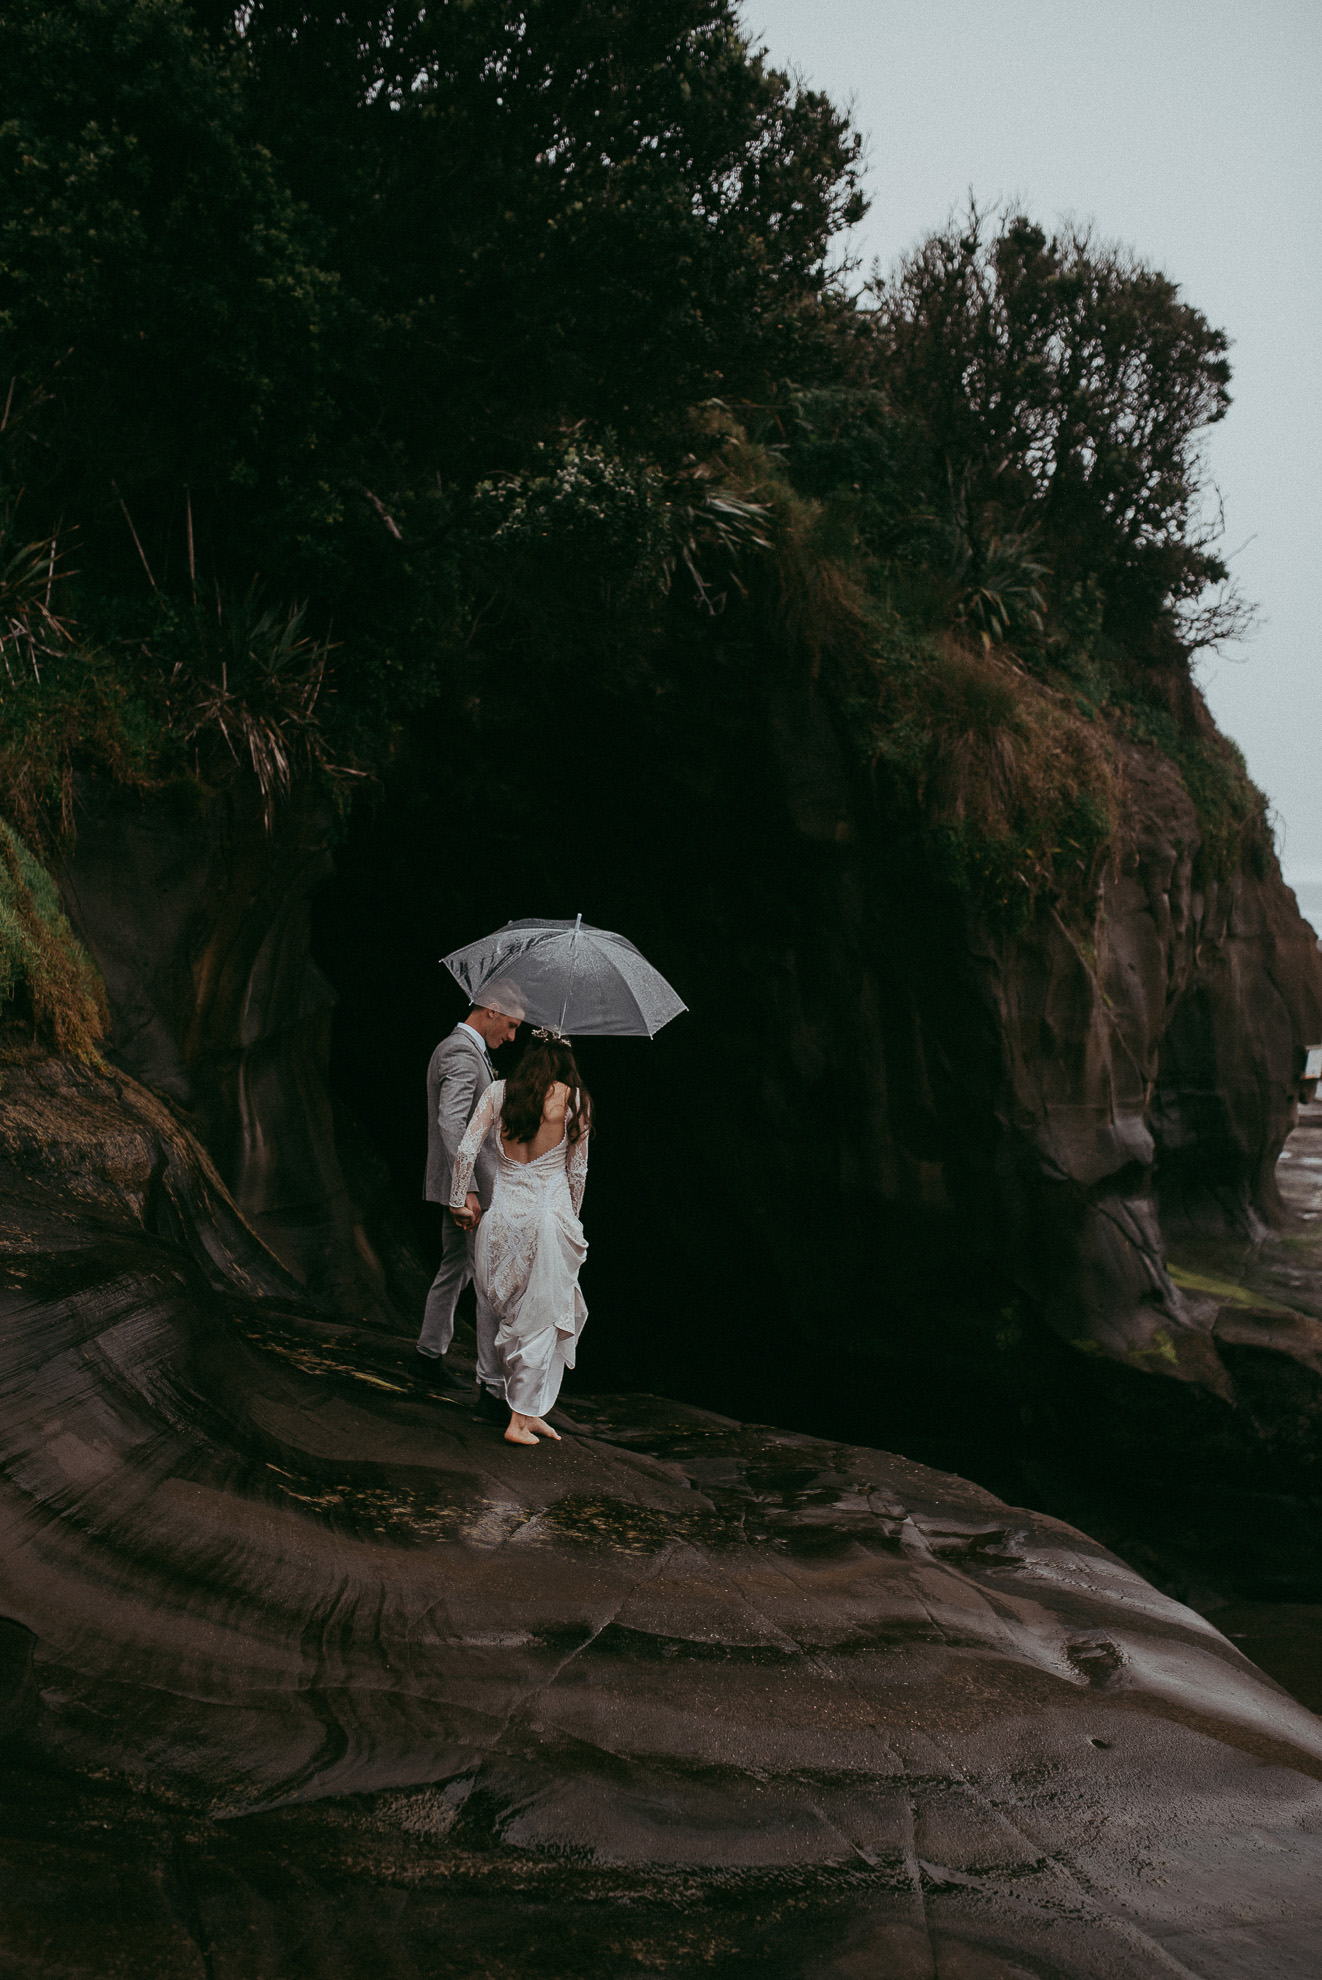 Muriwai beach bride and groom photo shoot {West Auckland wedding photographer}